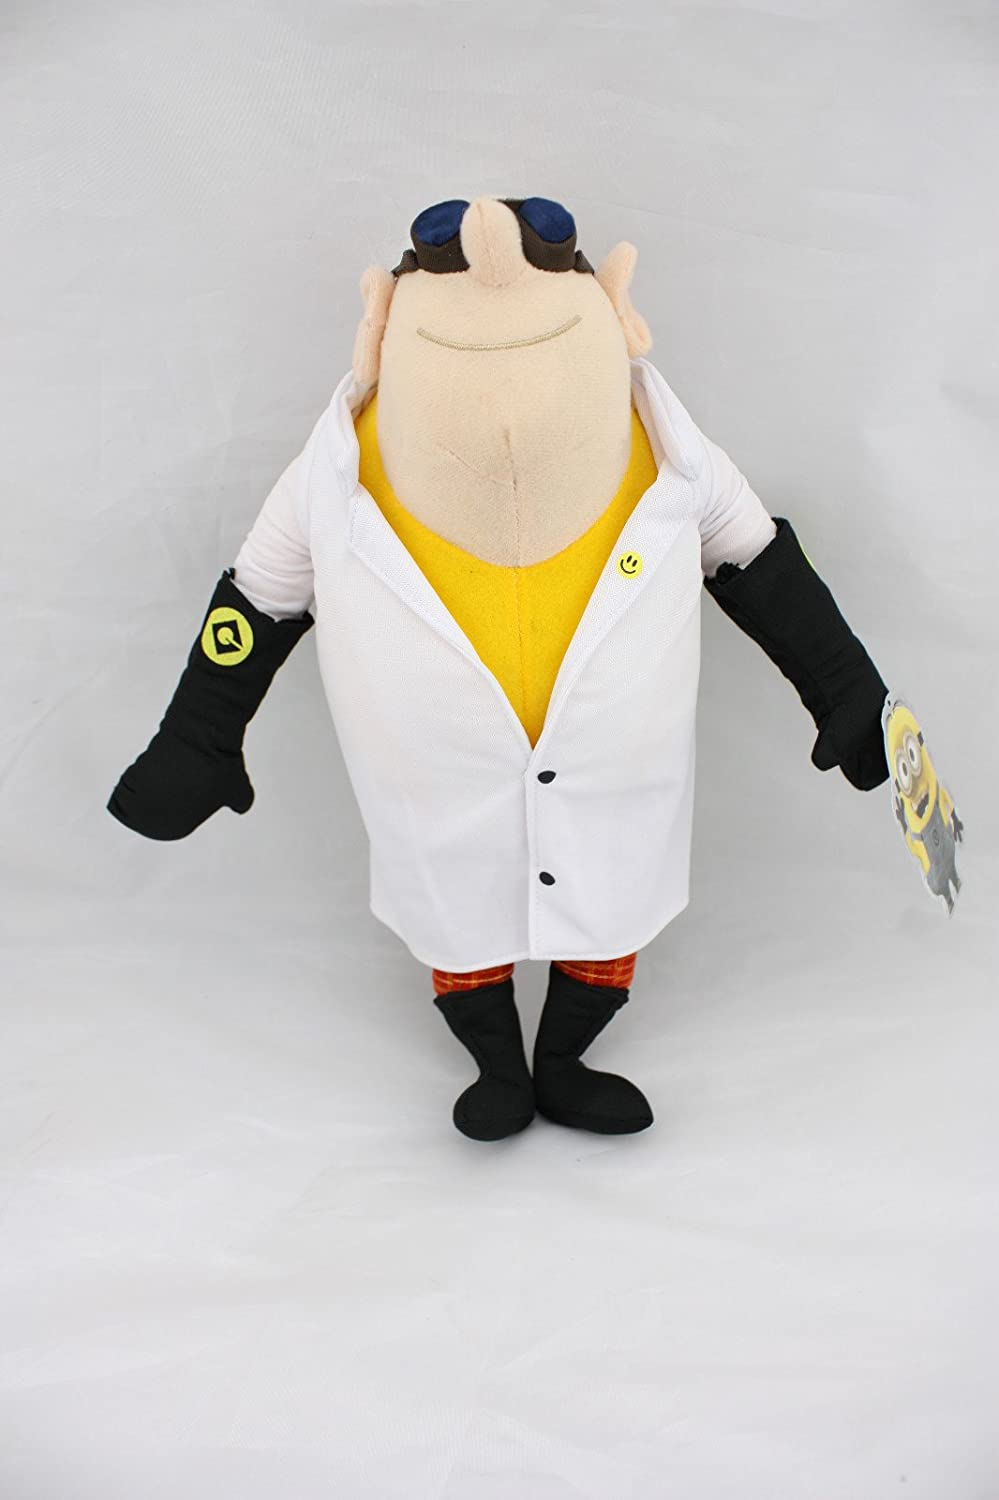 Dr. Nefario Plush Doll